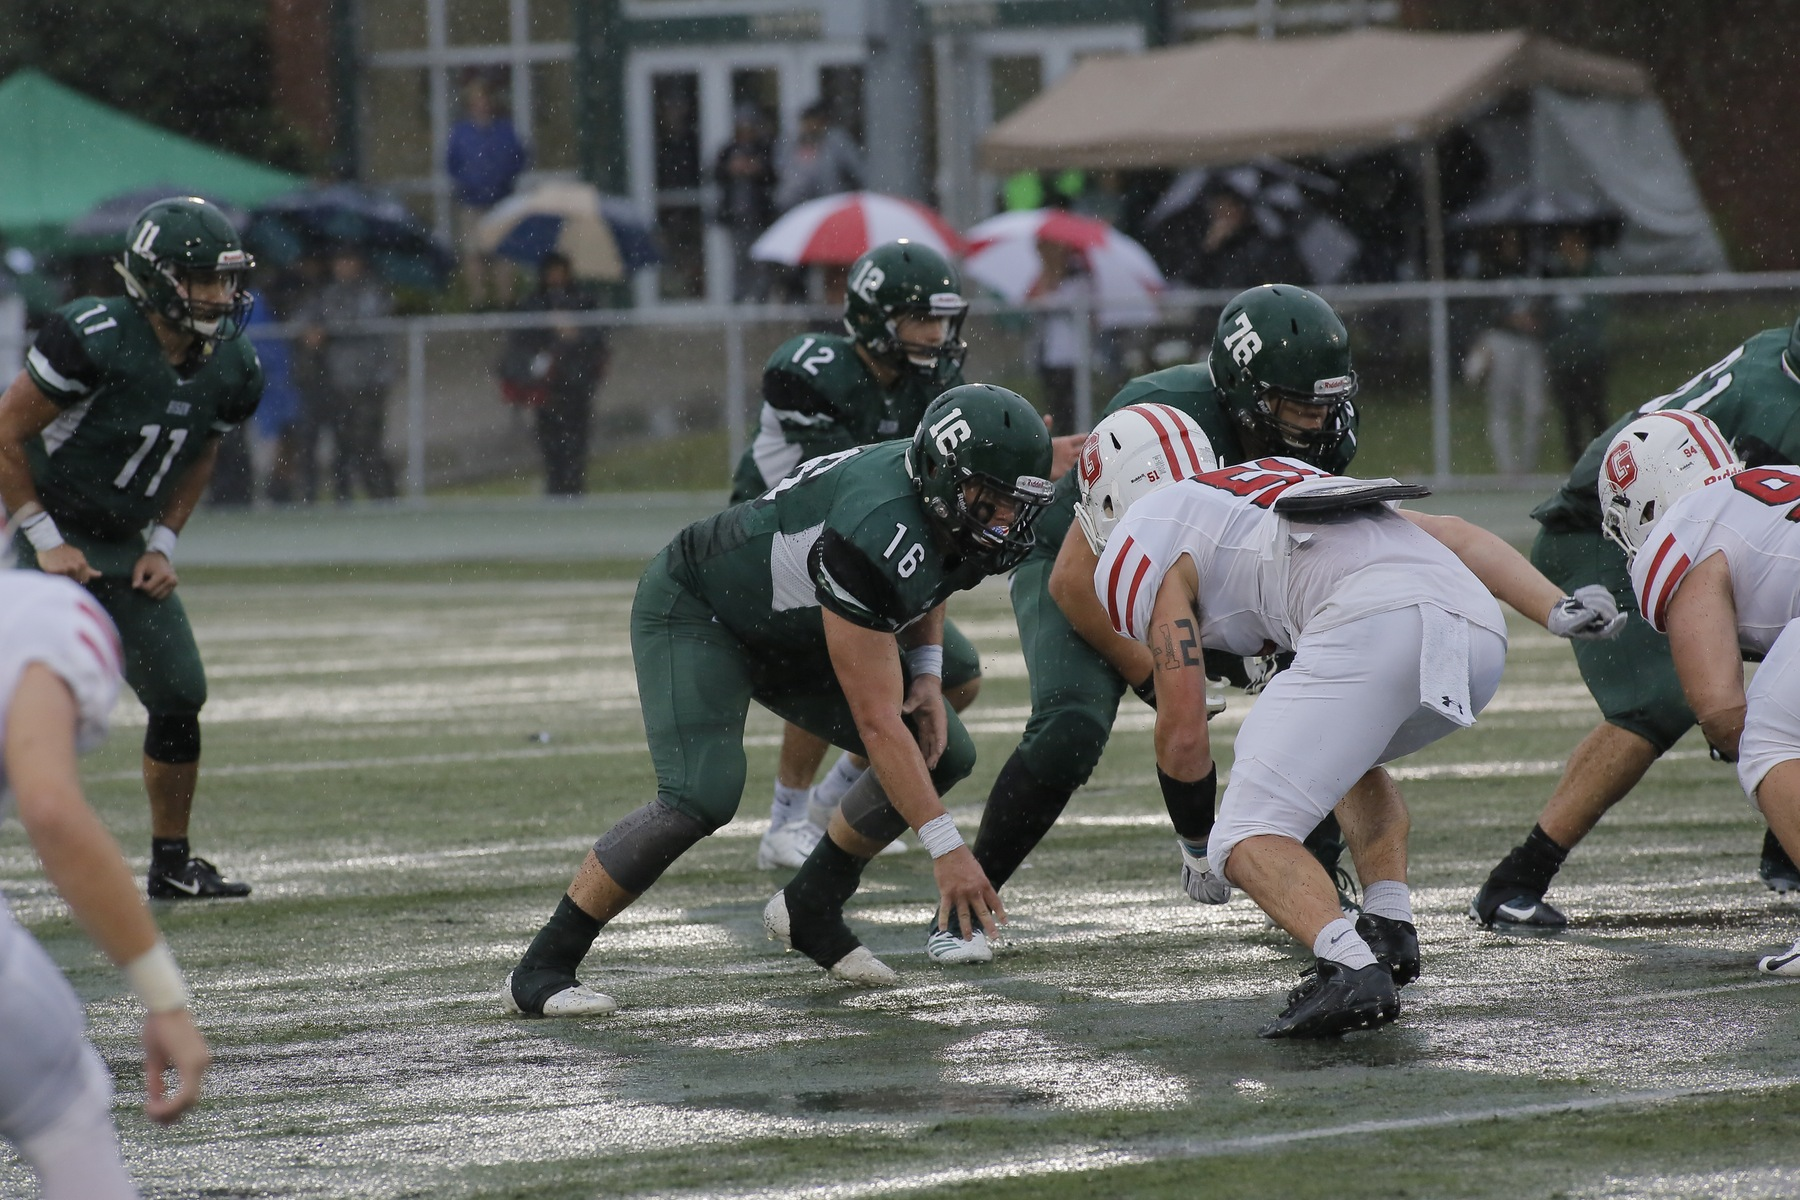 Bethany Drops to Westminster, 21-3